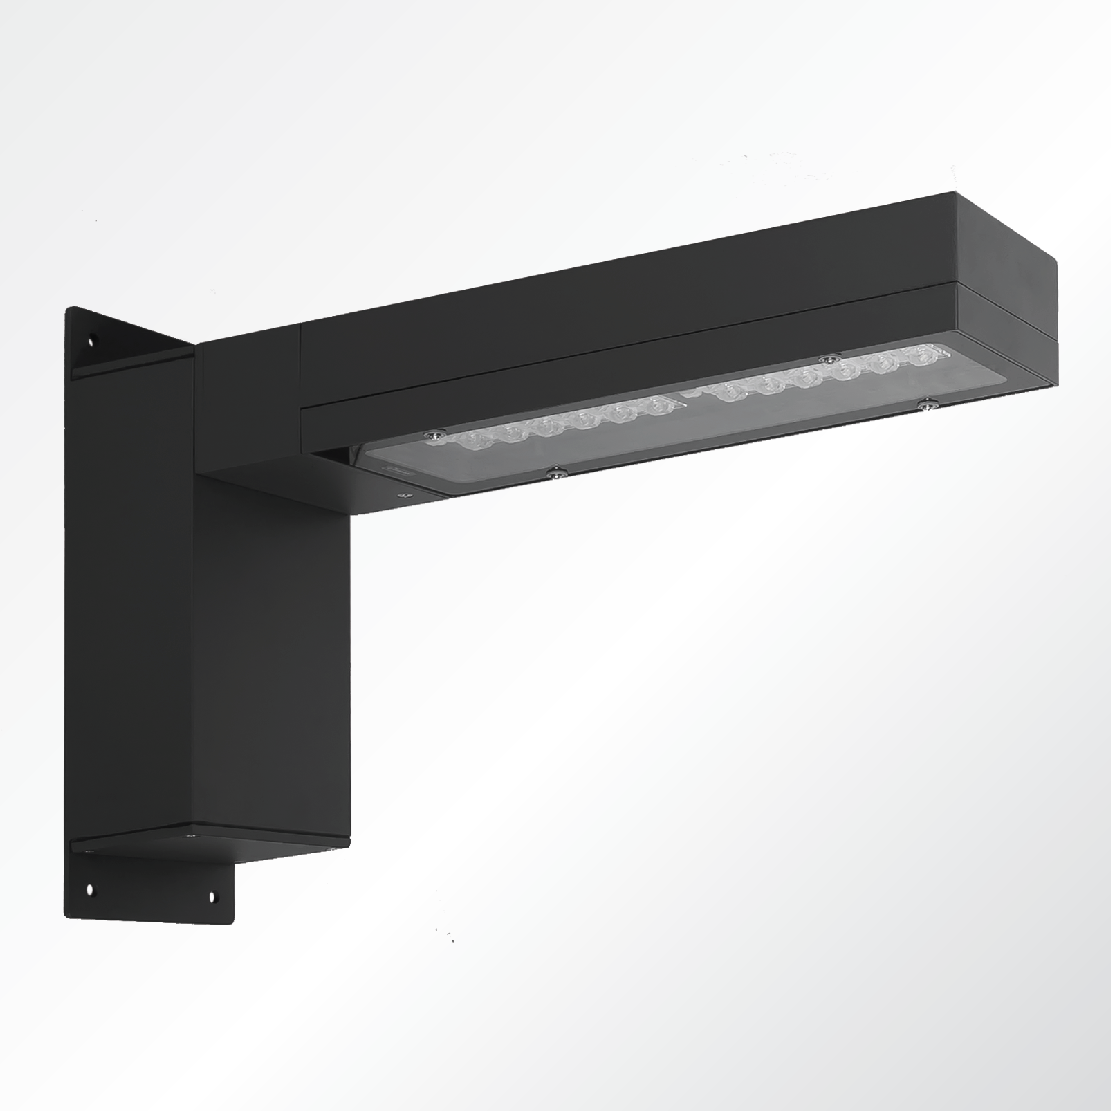 Surface luminaires light linear pt 12 surface Exterior linear led lighting